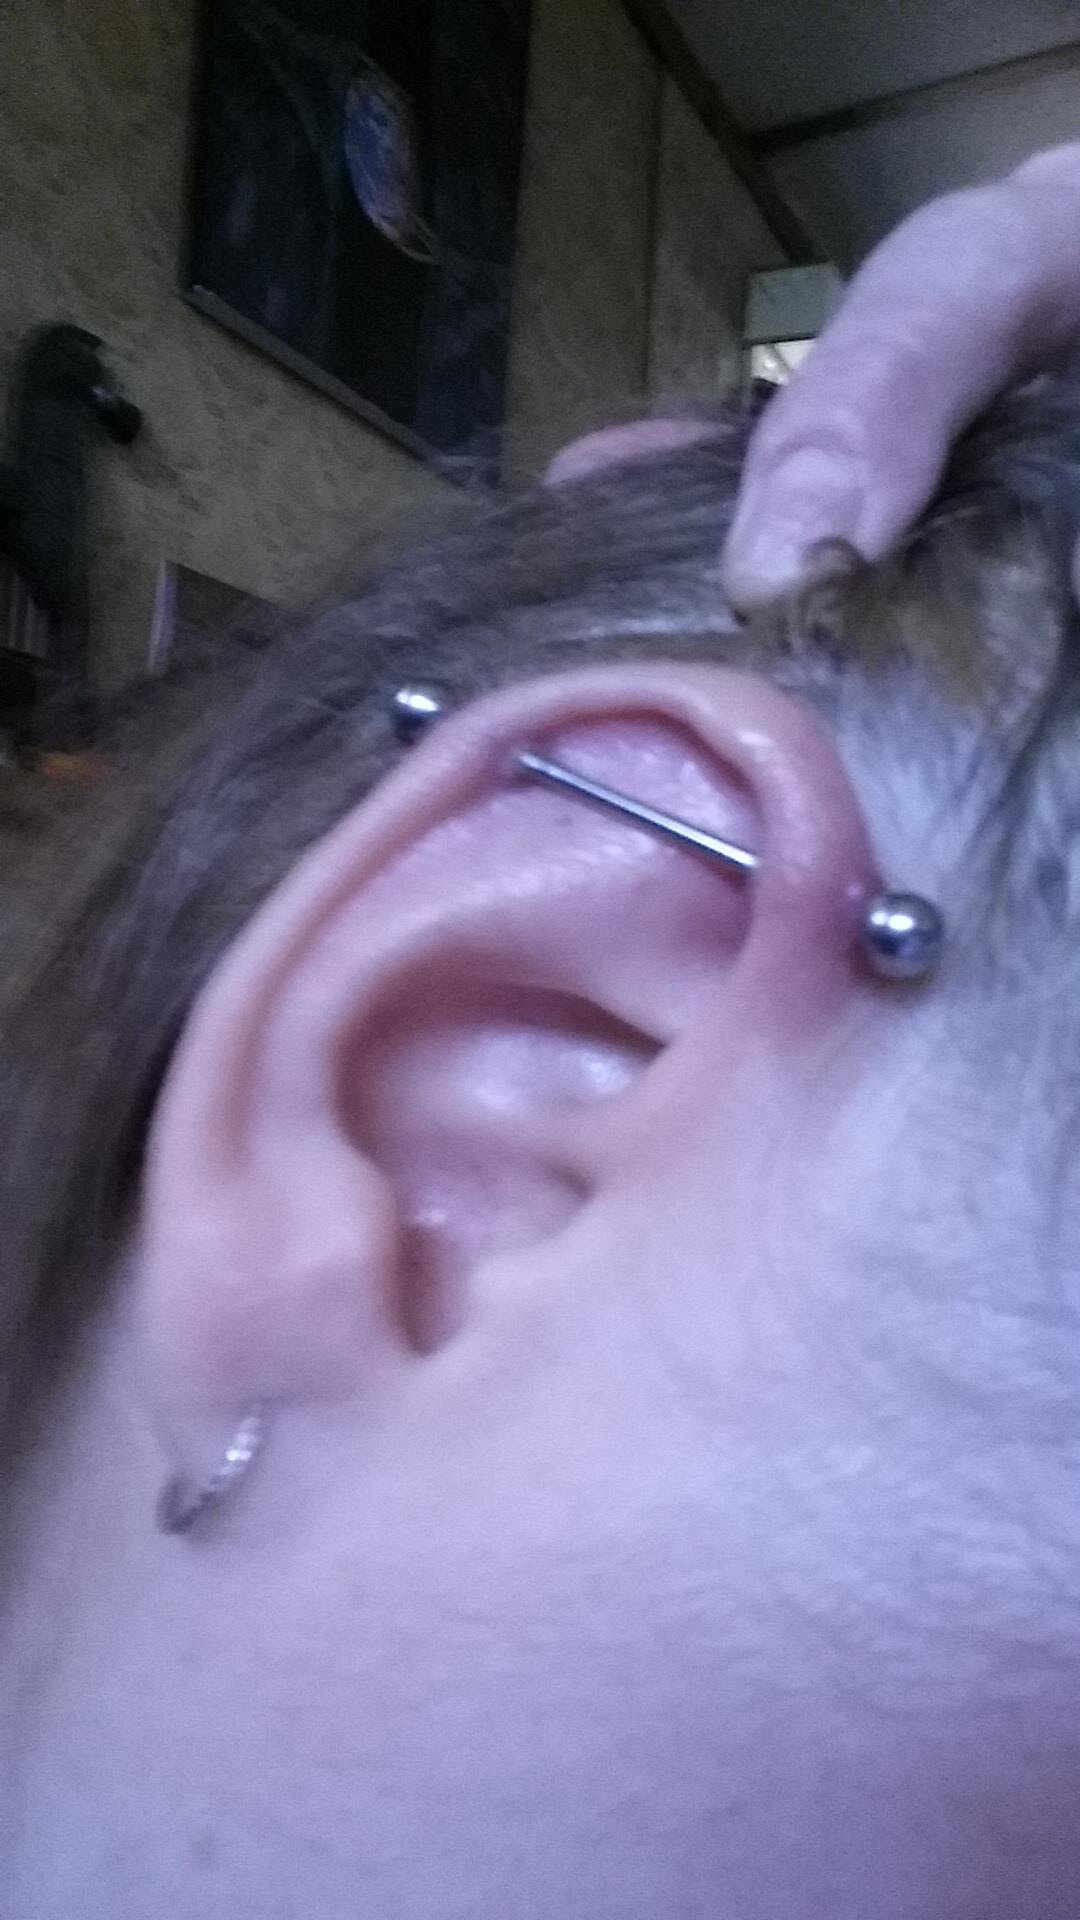 4 Wks Industrial How Do I Get Rid Of The Bumps Piercing